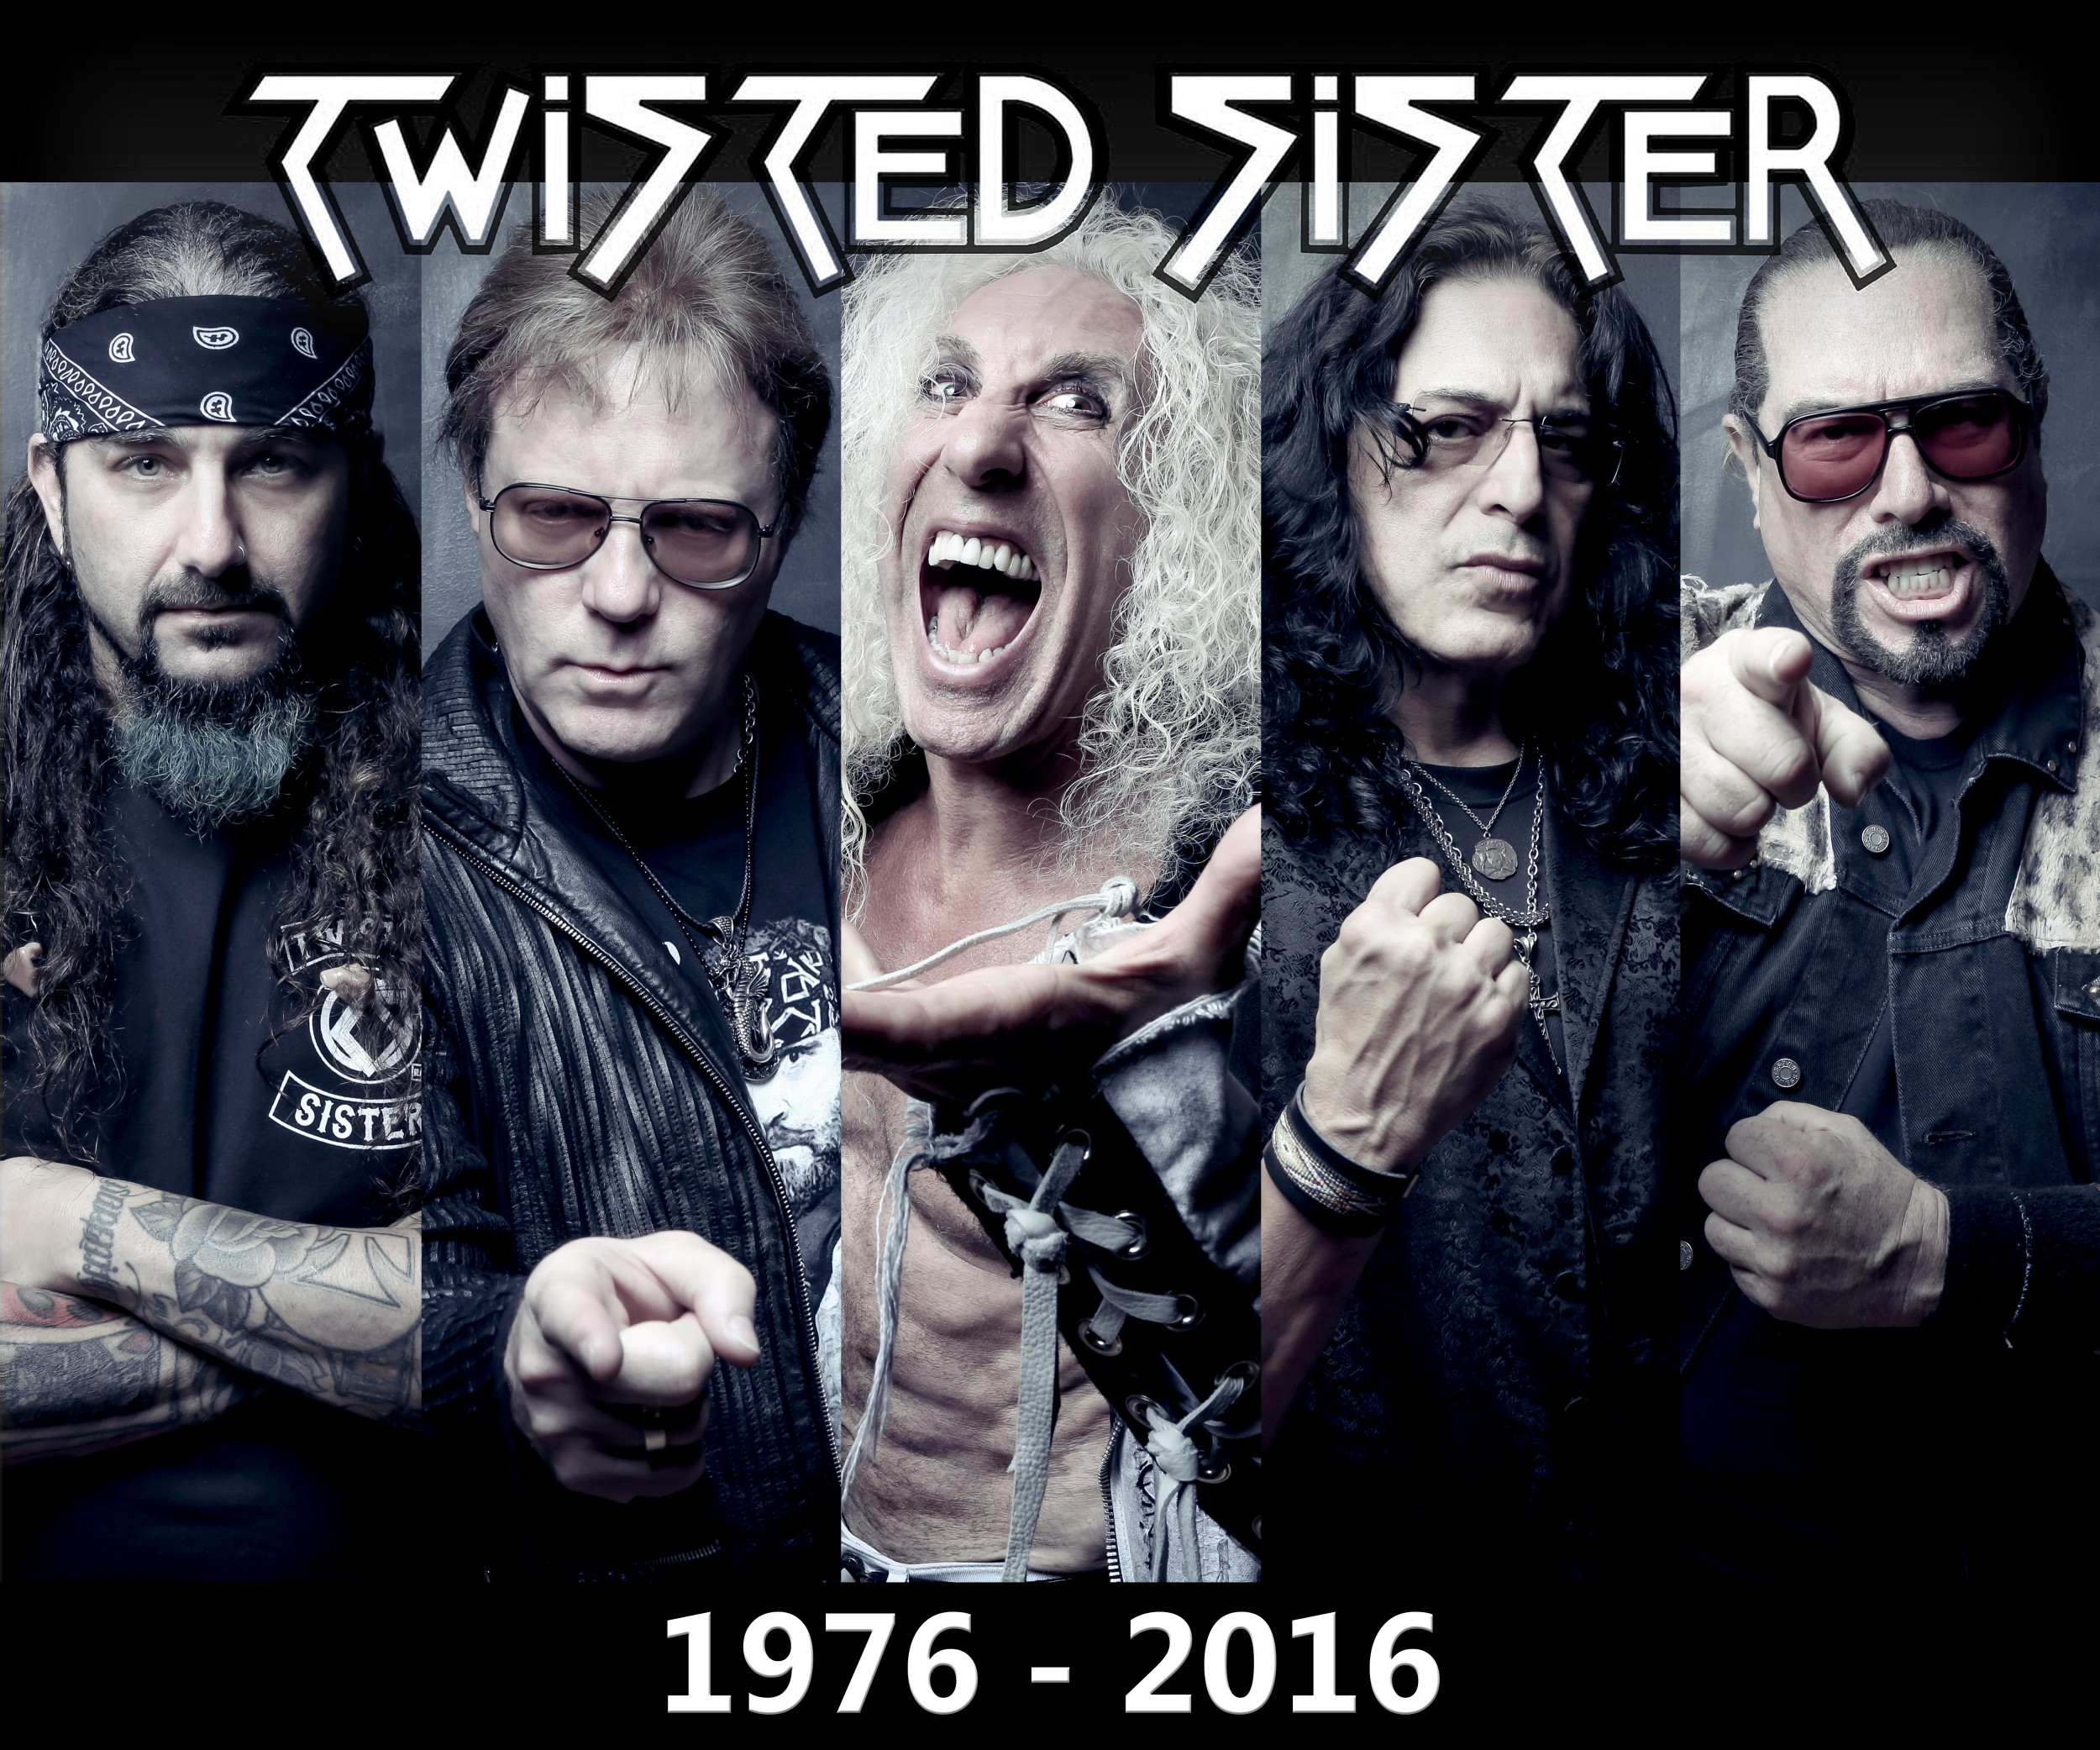 Twisted Sister / copyright Tim Tronckoe (jeudi 14 juillet 2016)